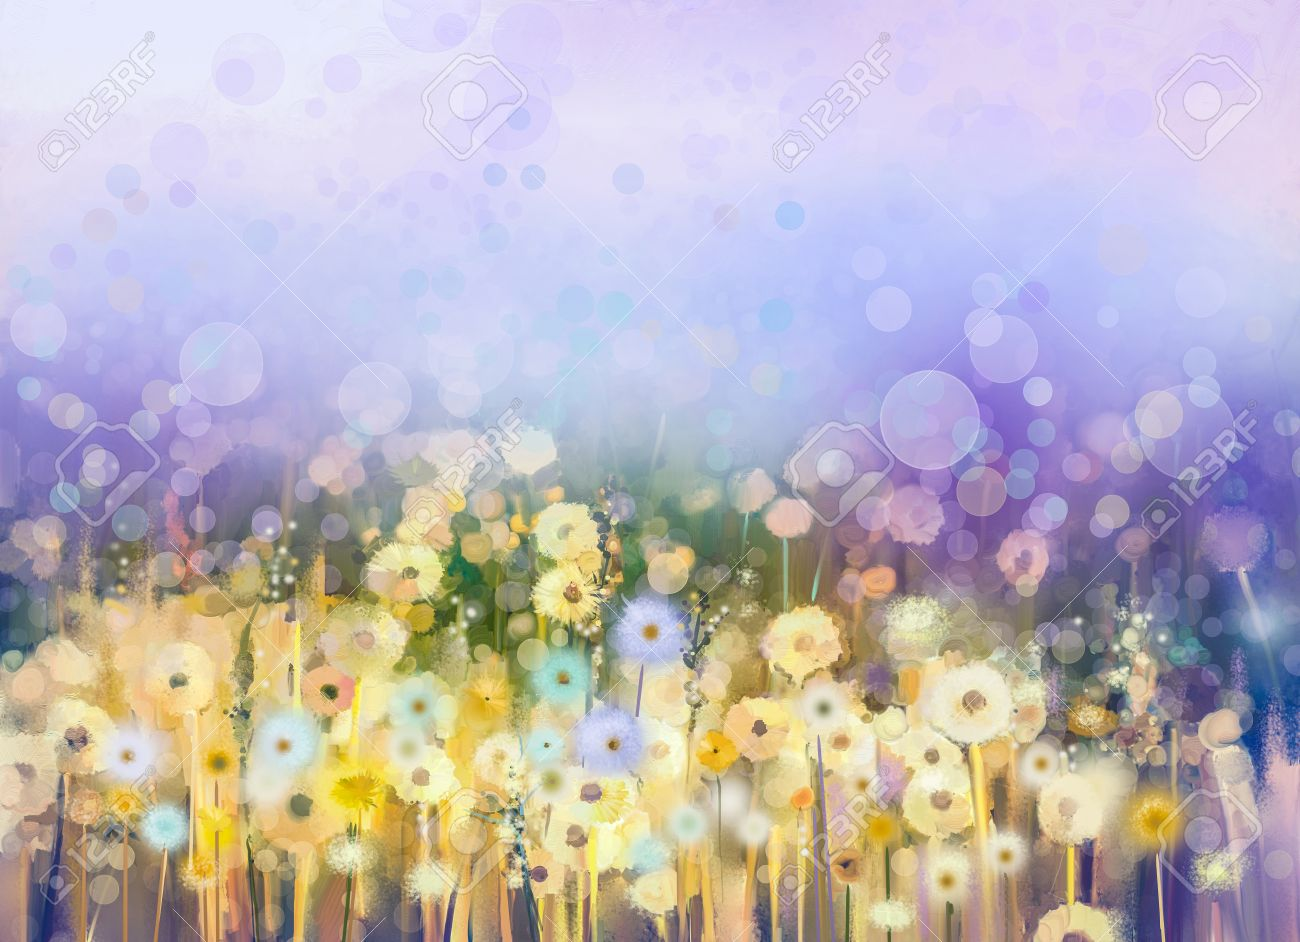 Abstract Oil Painting Flowers Plant Dandelion Flower In Fields